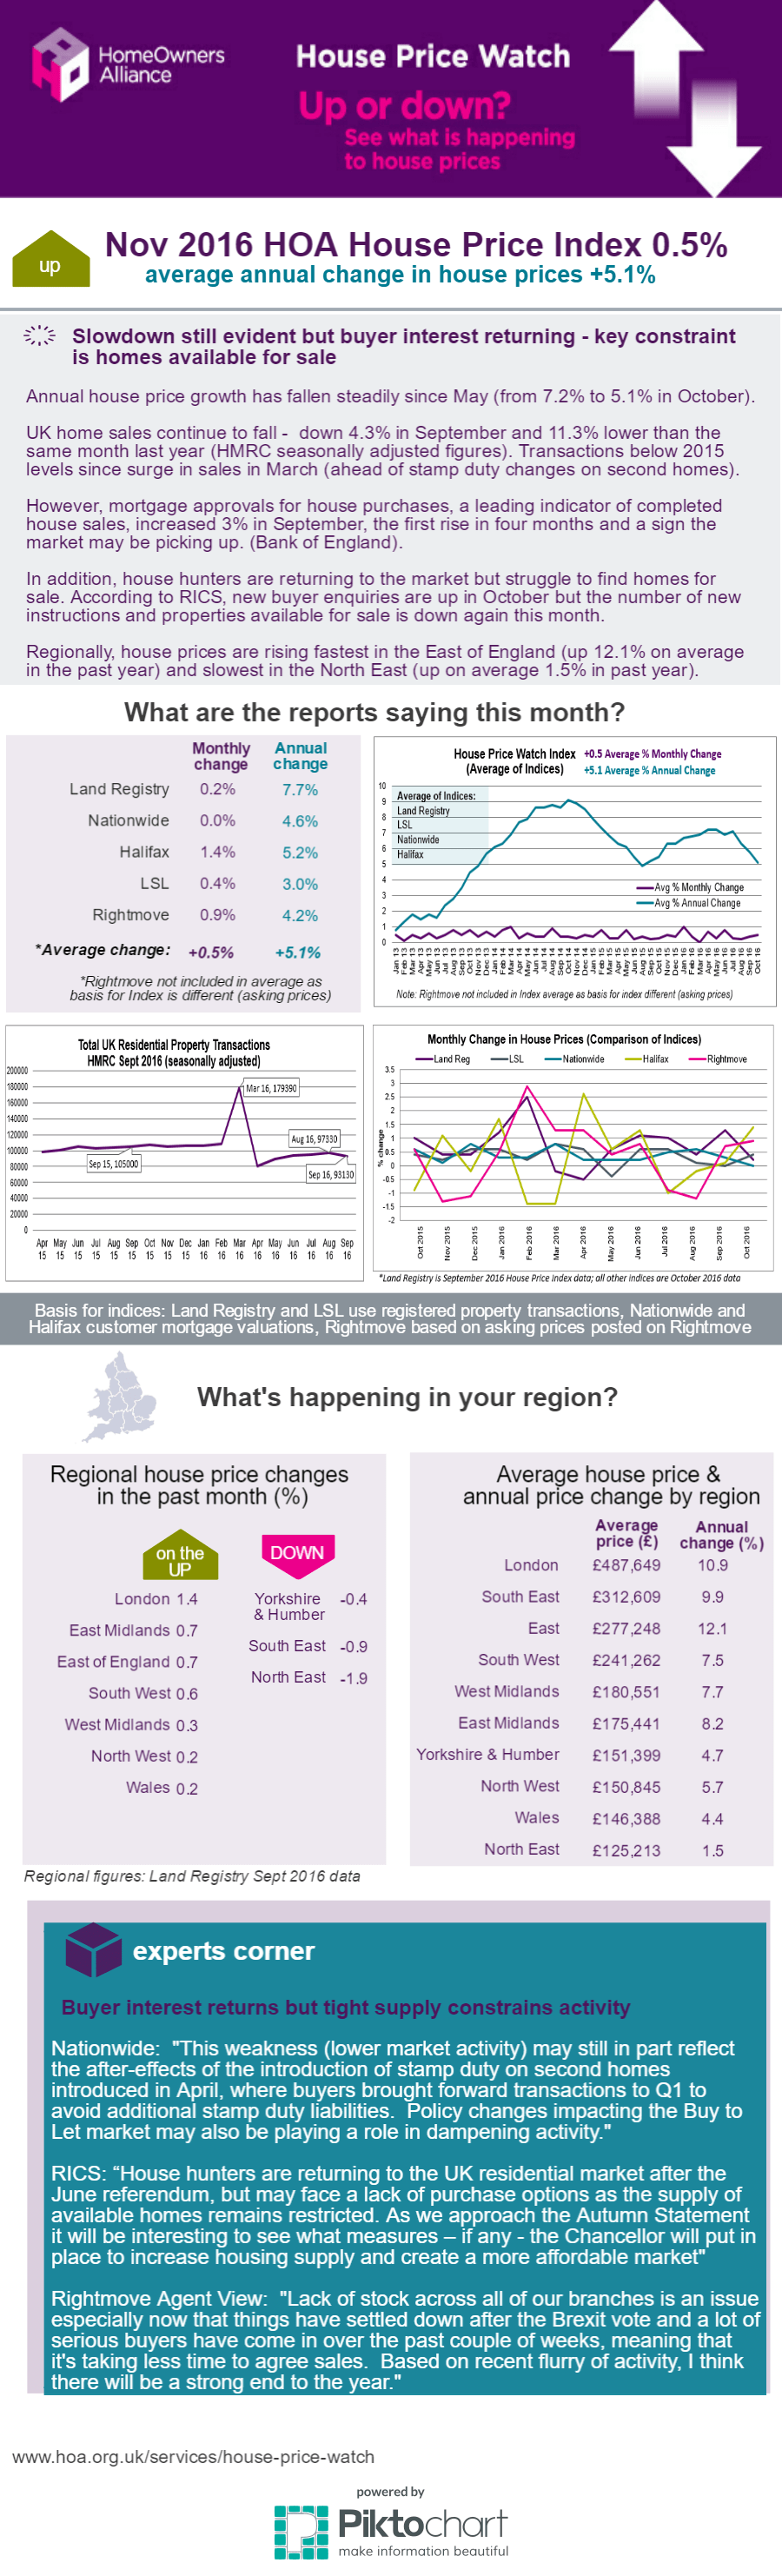 2016 Nov House Price Infographic visual summary of latest house price indices